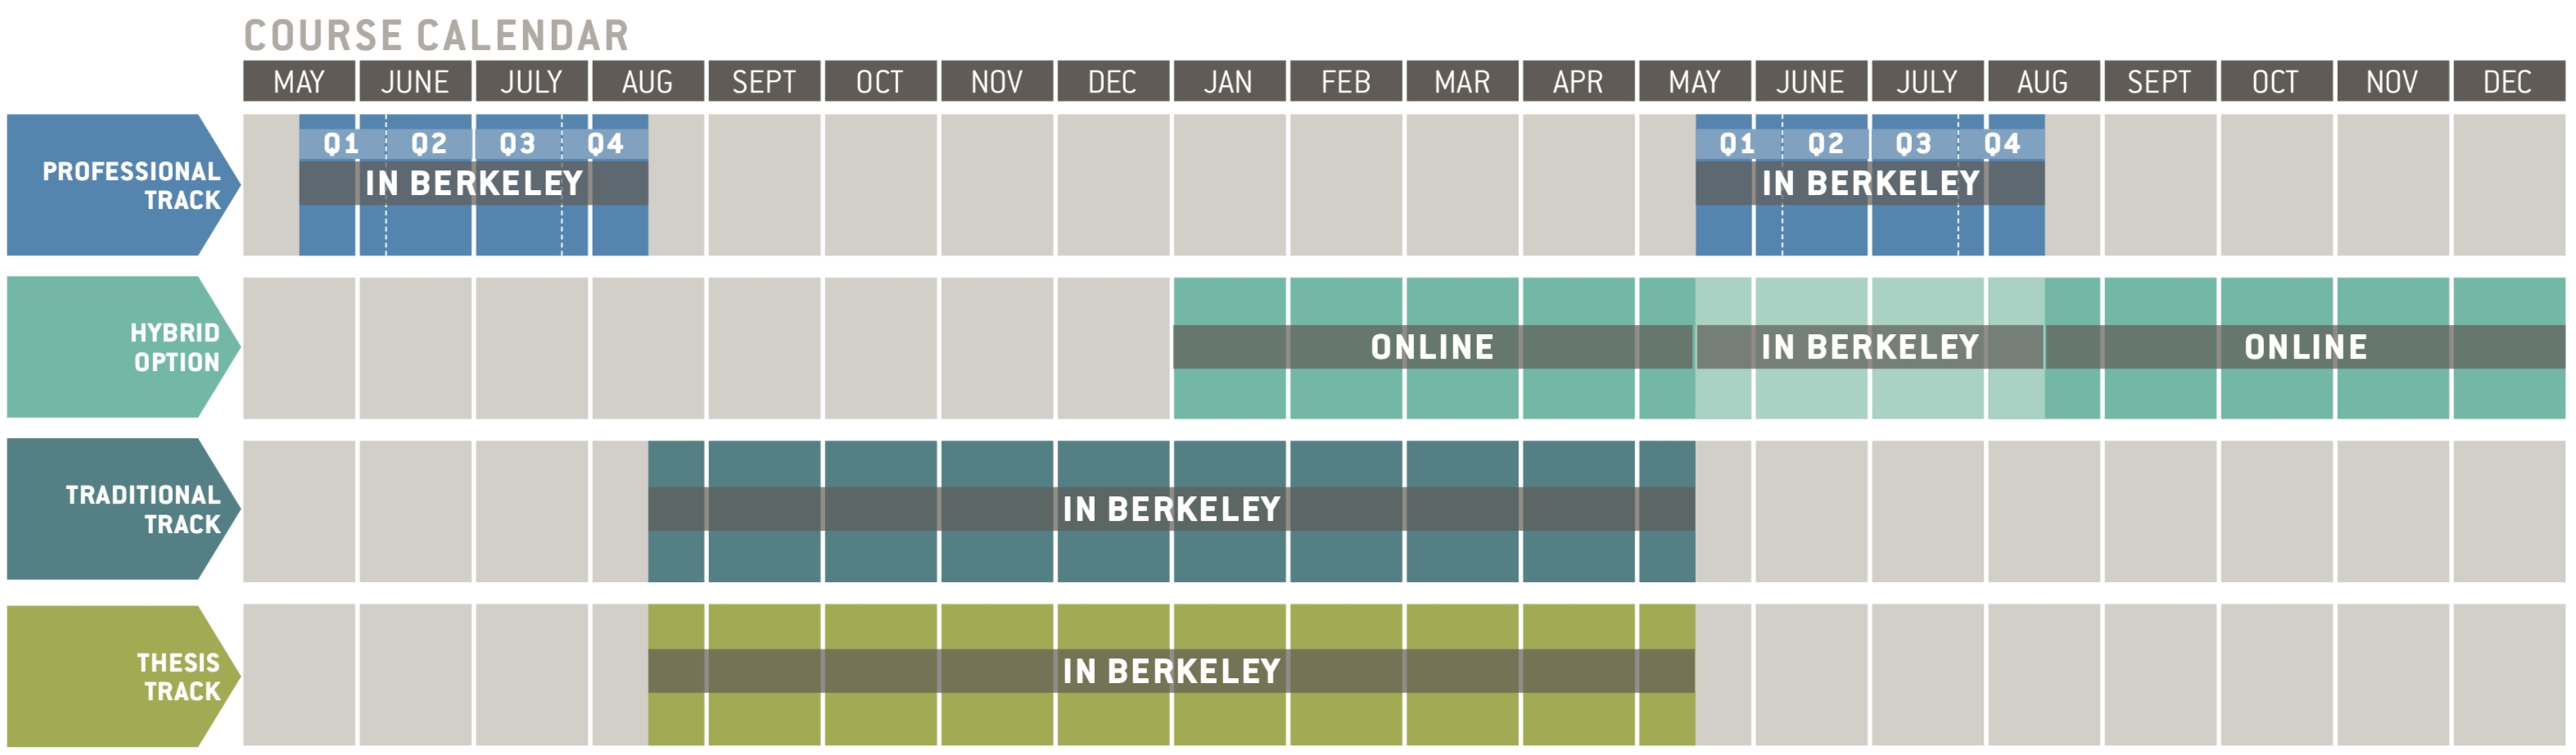 Landing Ll.m. Hybrid Option | Berkeley Law Uc Berkeley Academic Calendar 2019-20